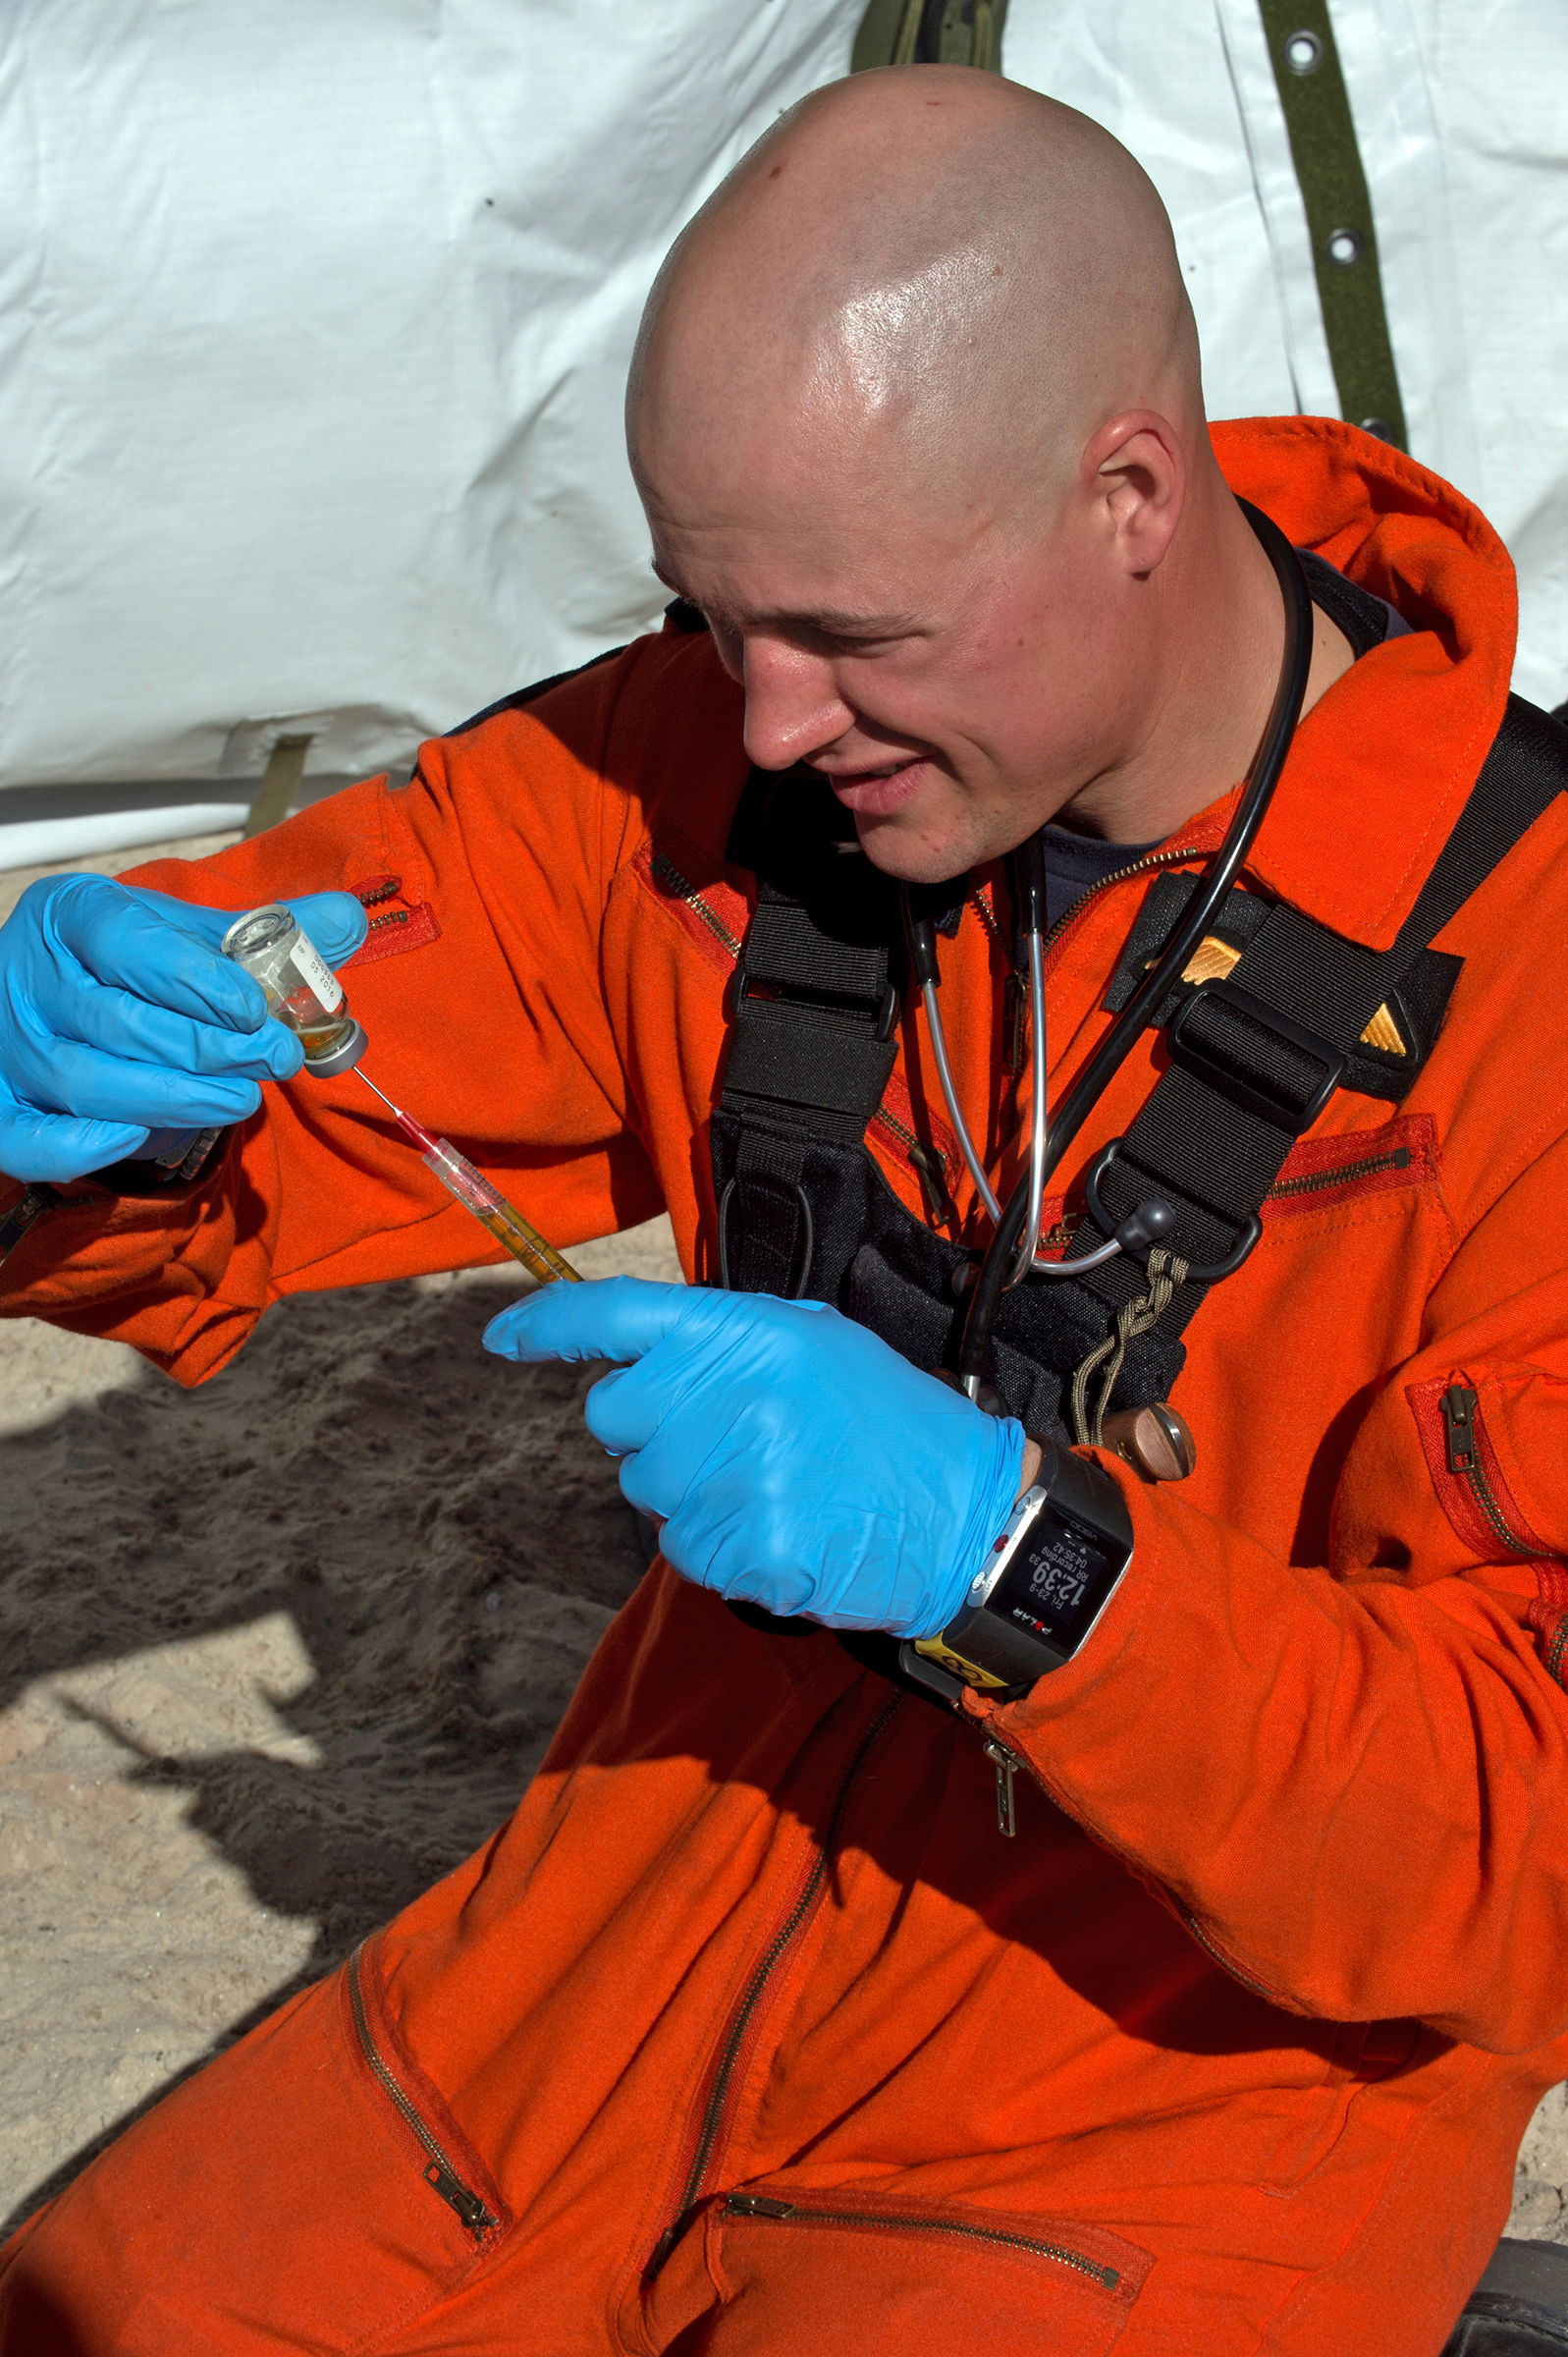 A man with a shaved head, wearing an orange jump suit and blue gloves, fills a syringe from a small vial of liquid.